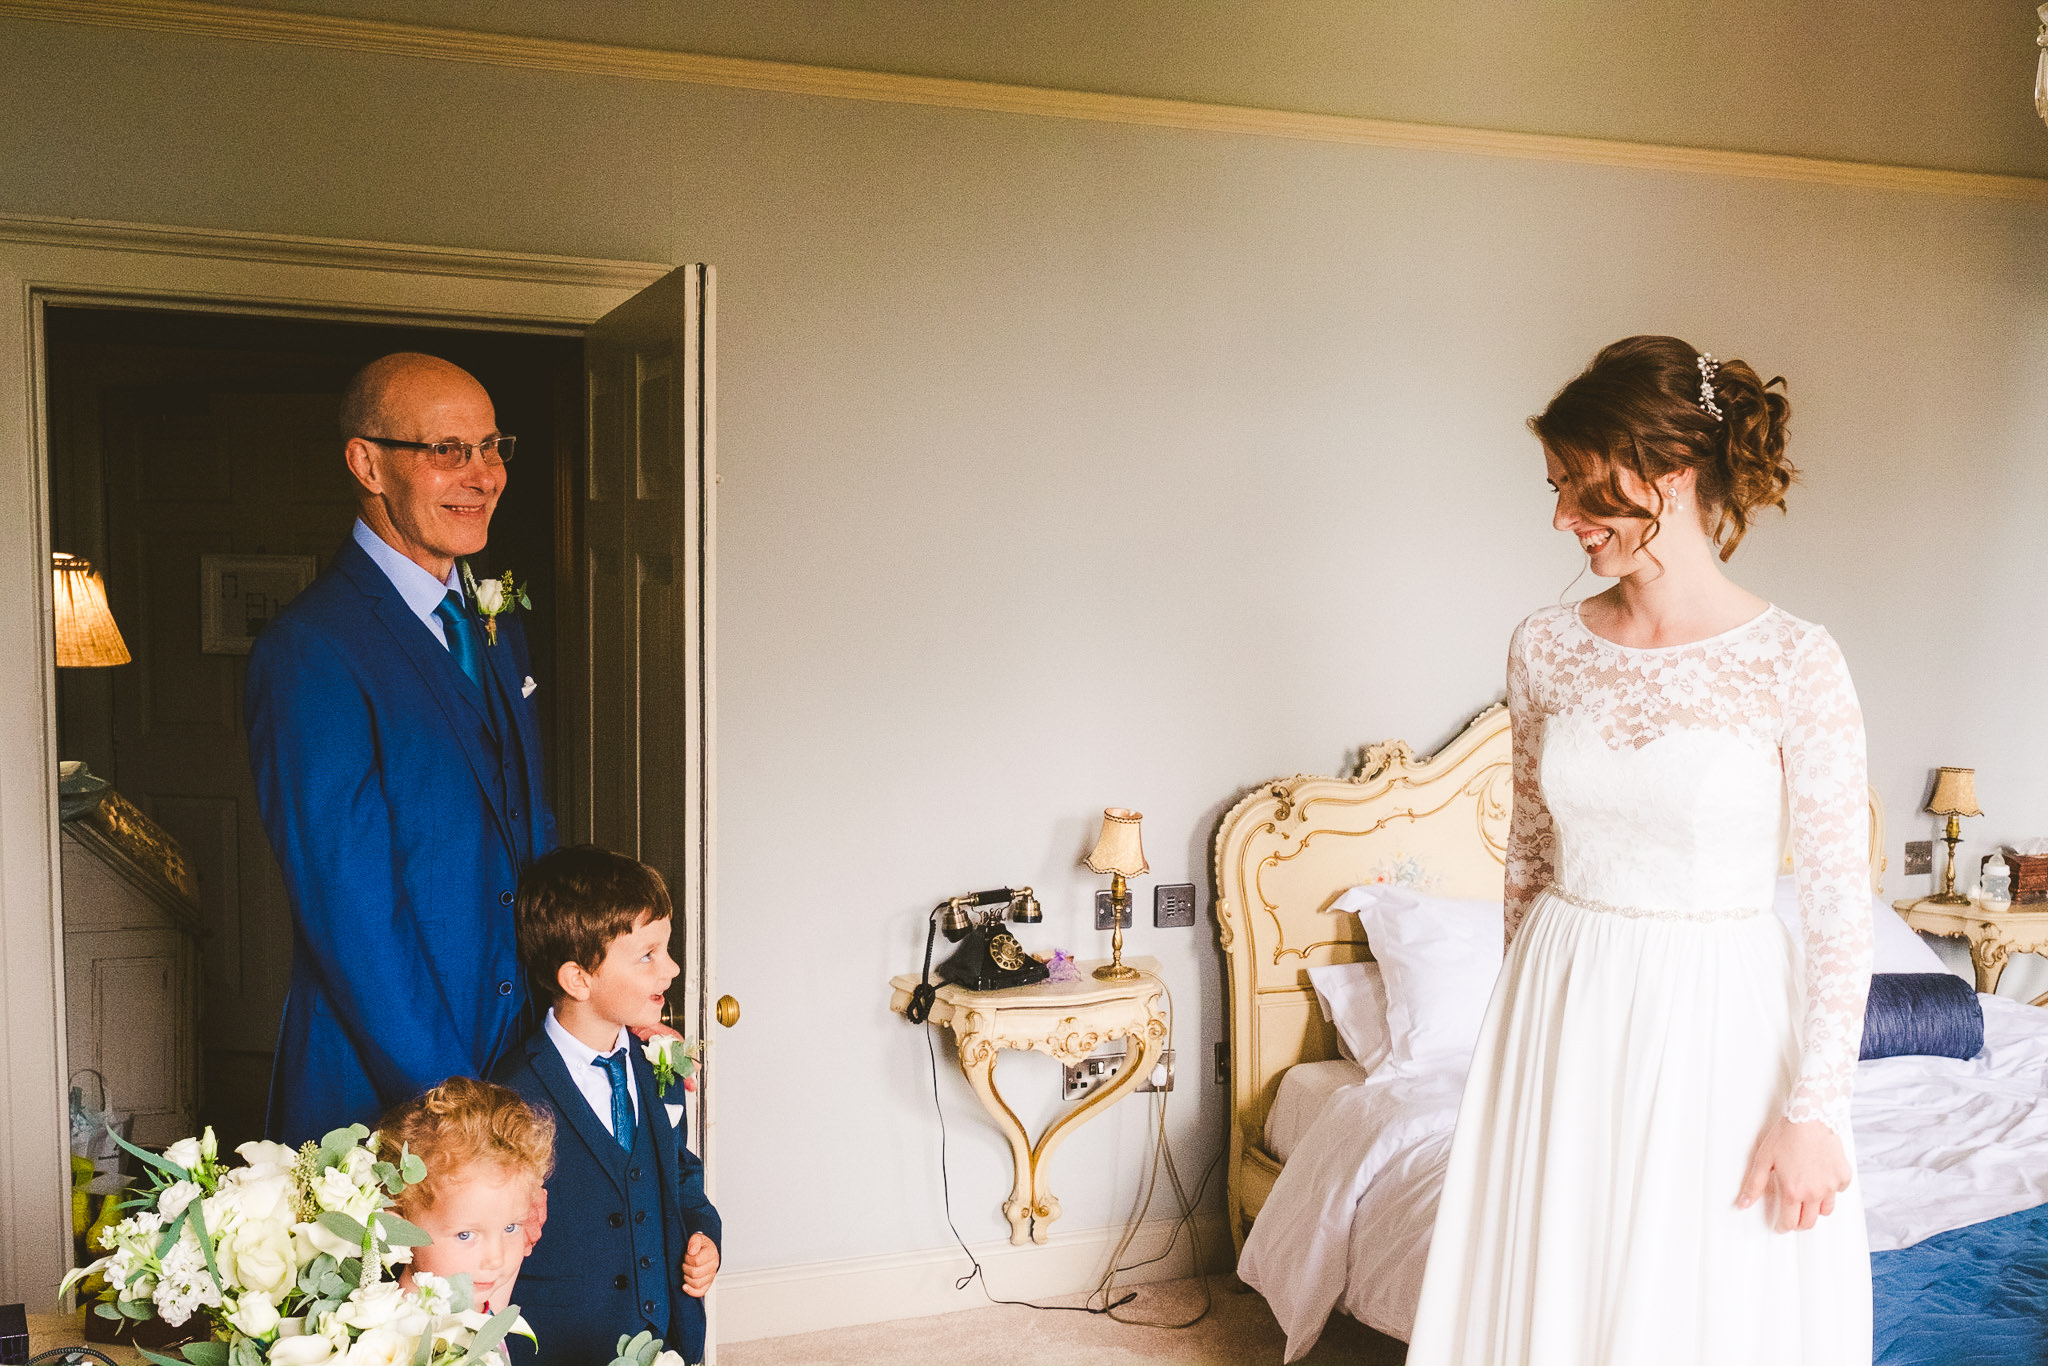 Father of the bride sees her for the first time before the wedding